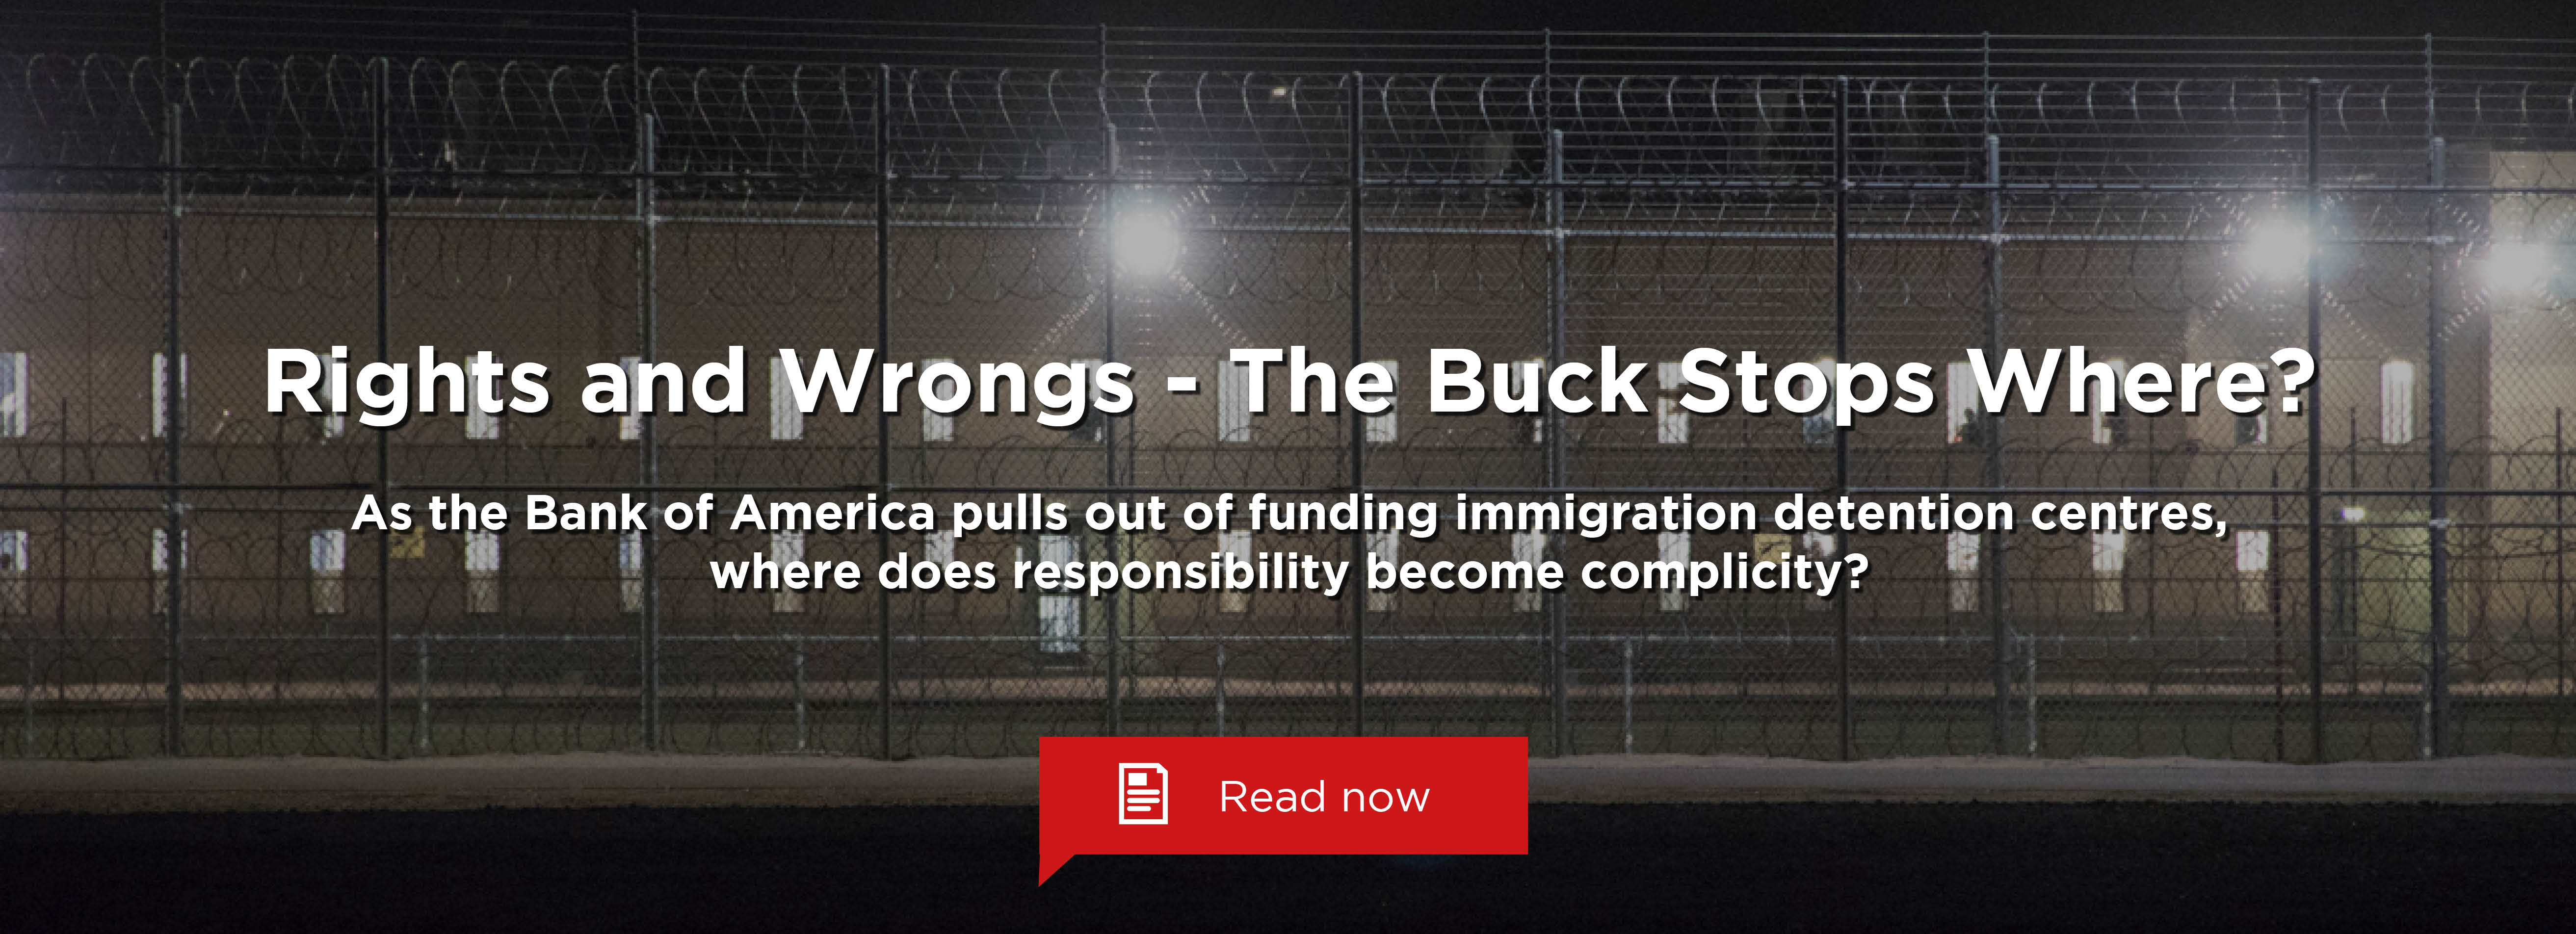 Rights and Wrongs - Where Does the Buck Stop?